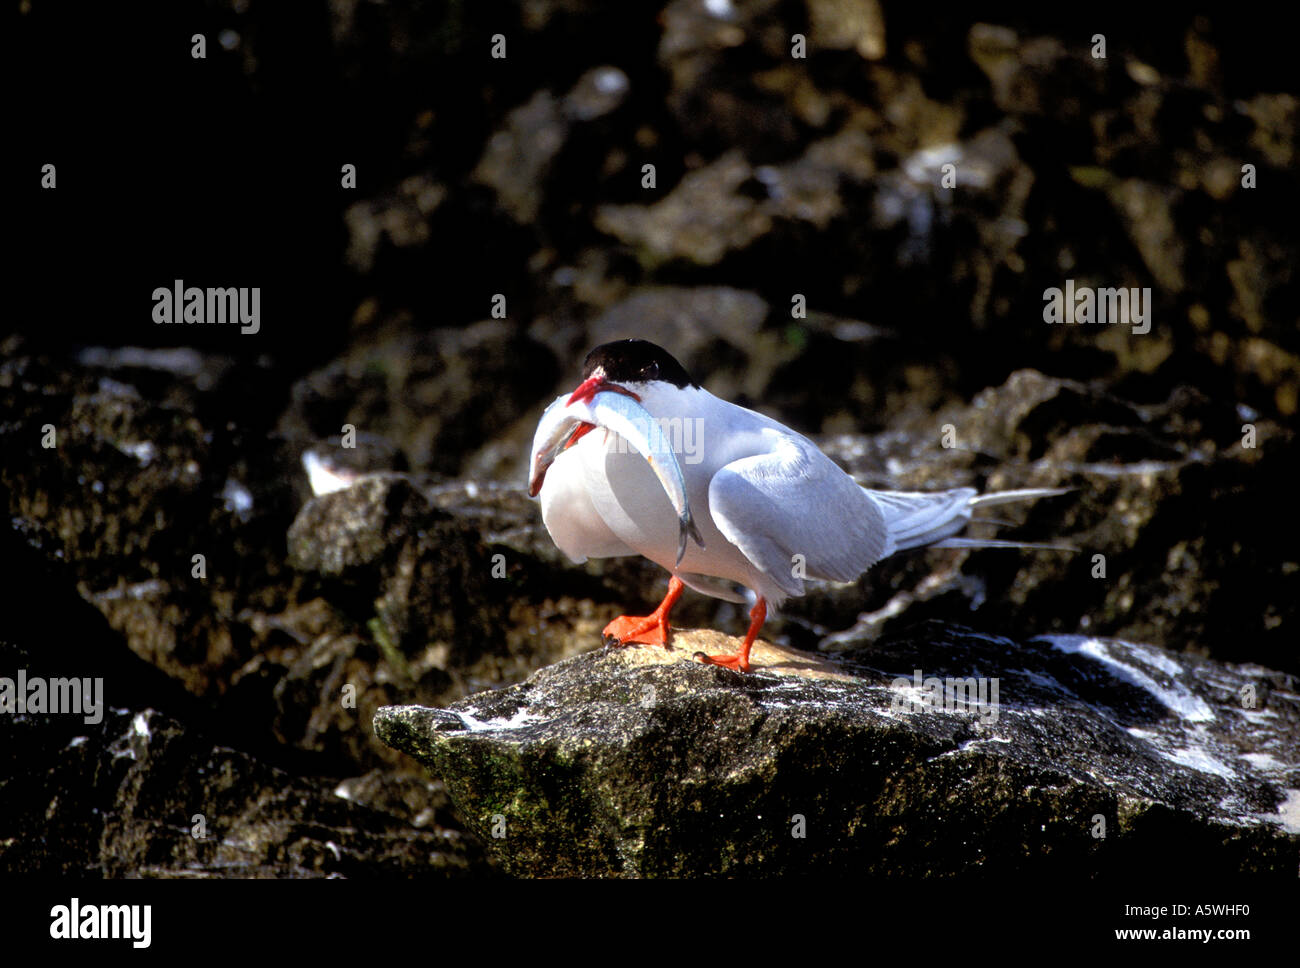 BT2-27 SOUTH AMERICAN TERN WITH LARGE FISH FOR CHICK - Stock Image